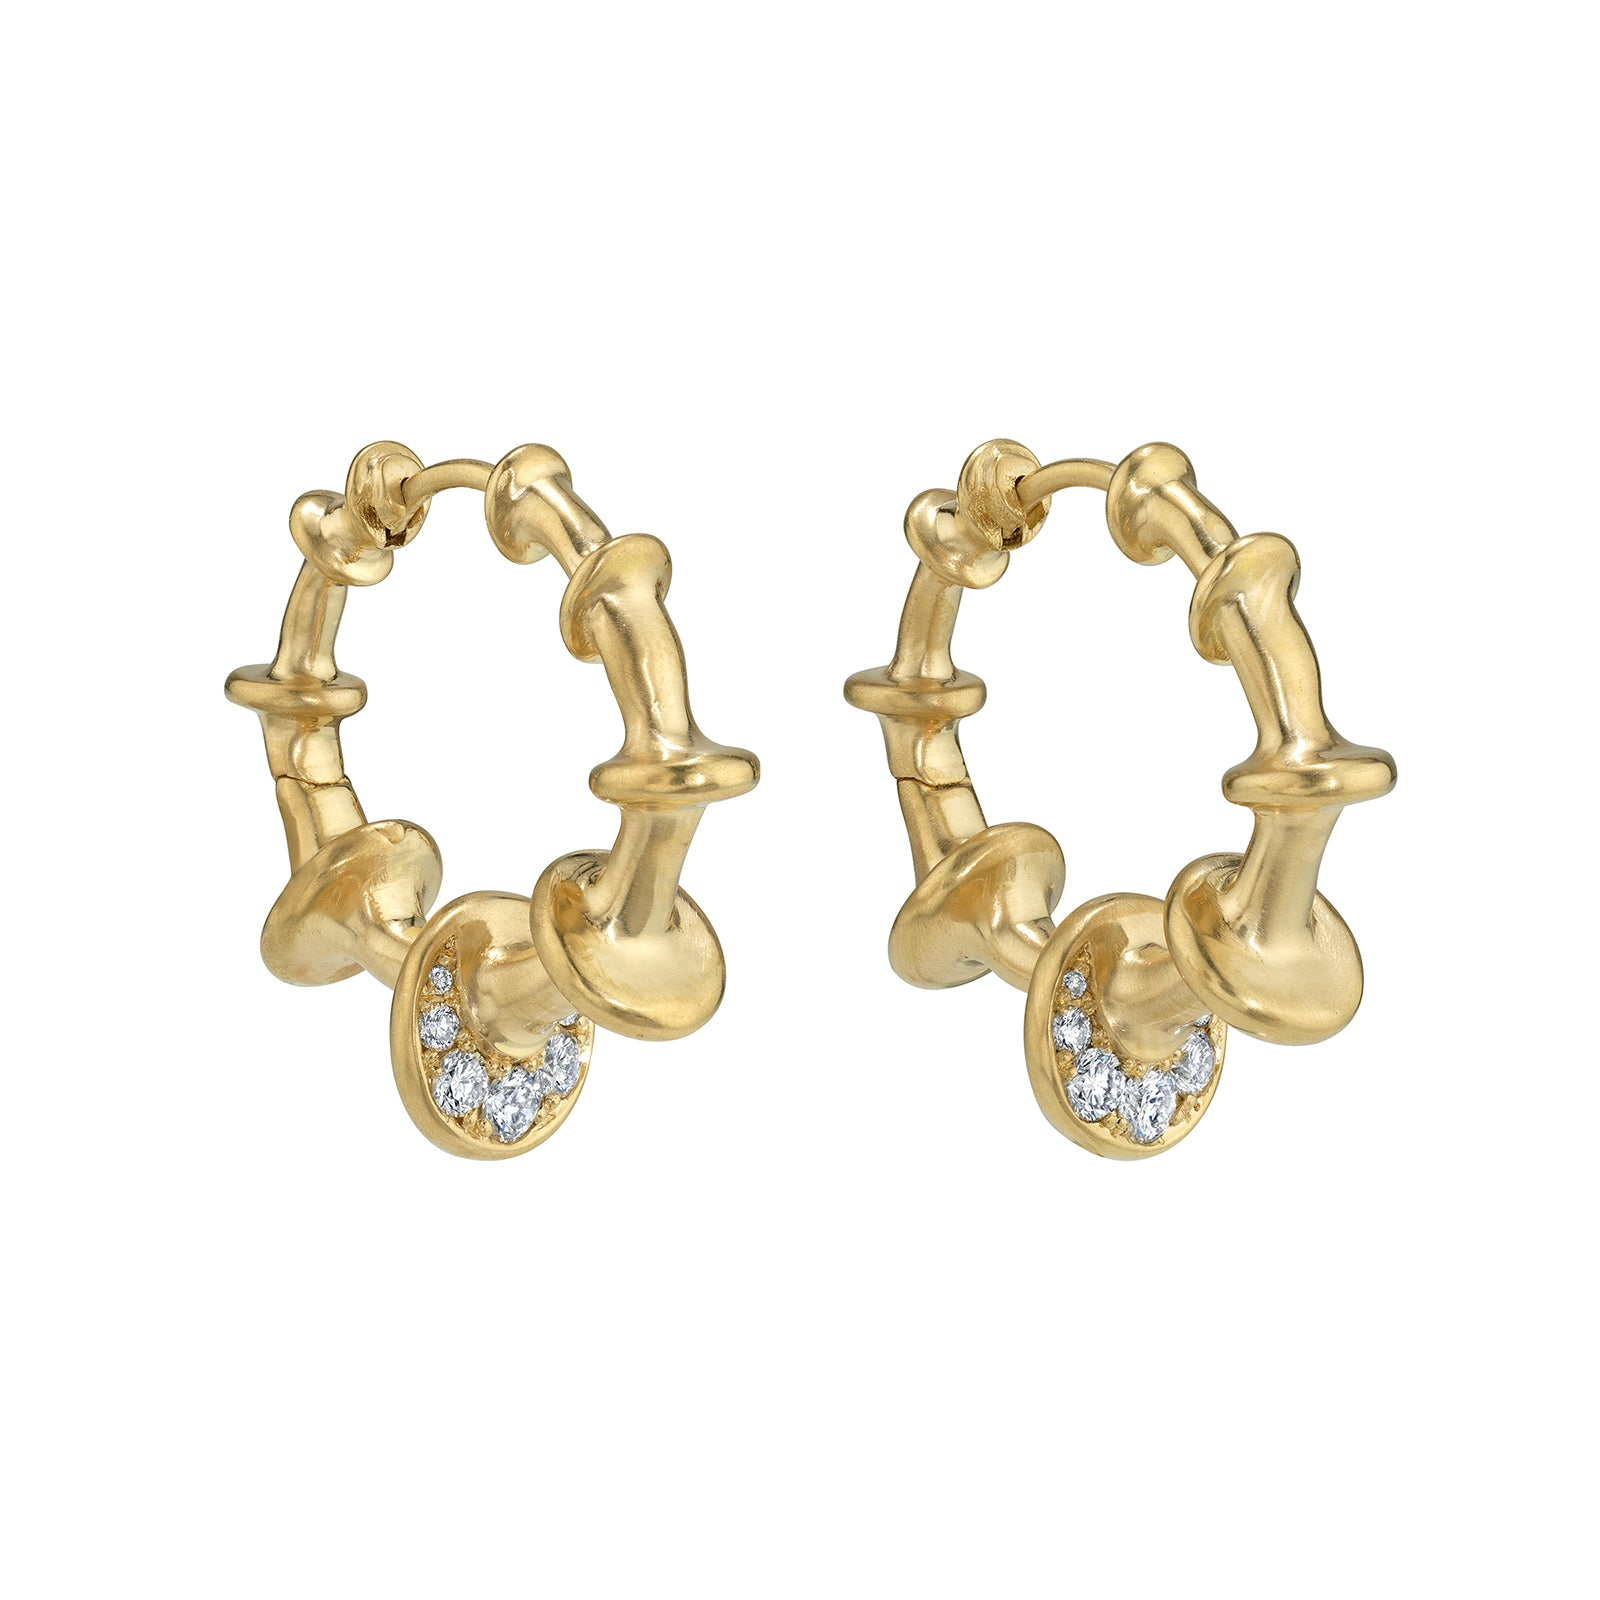 VRAM Chrona Hoops - Diamond - Earrings - Broken English Jewelry